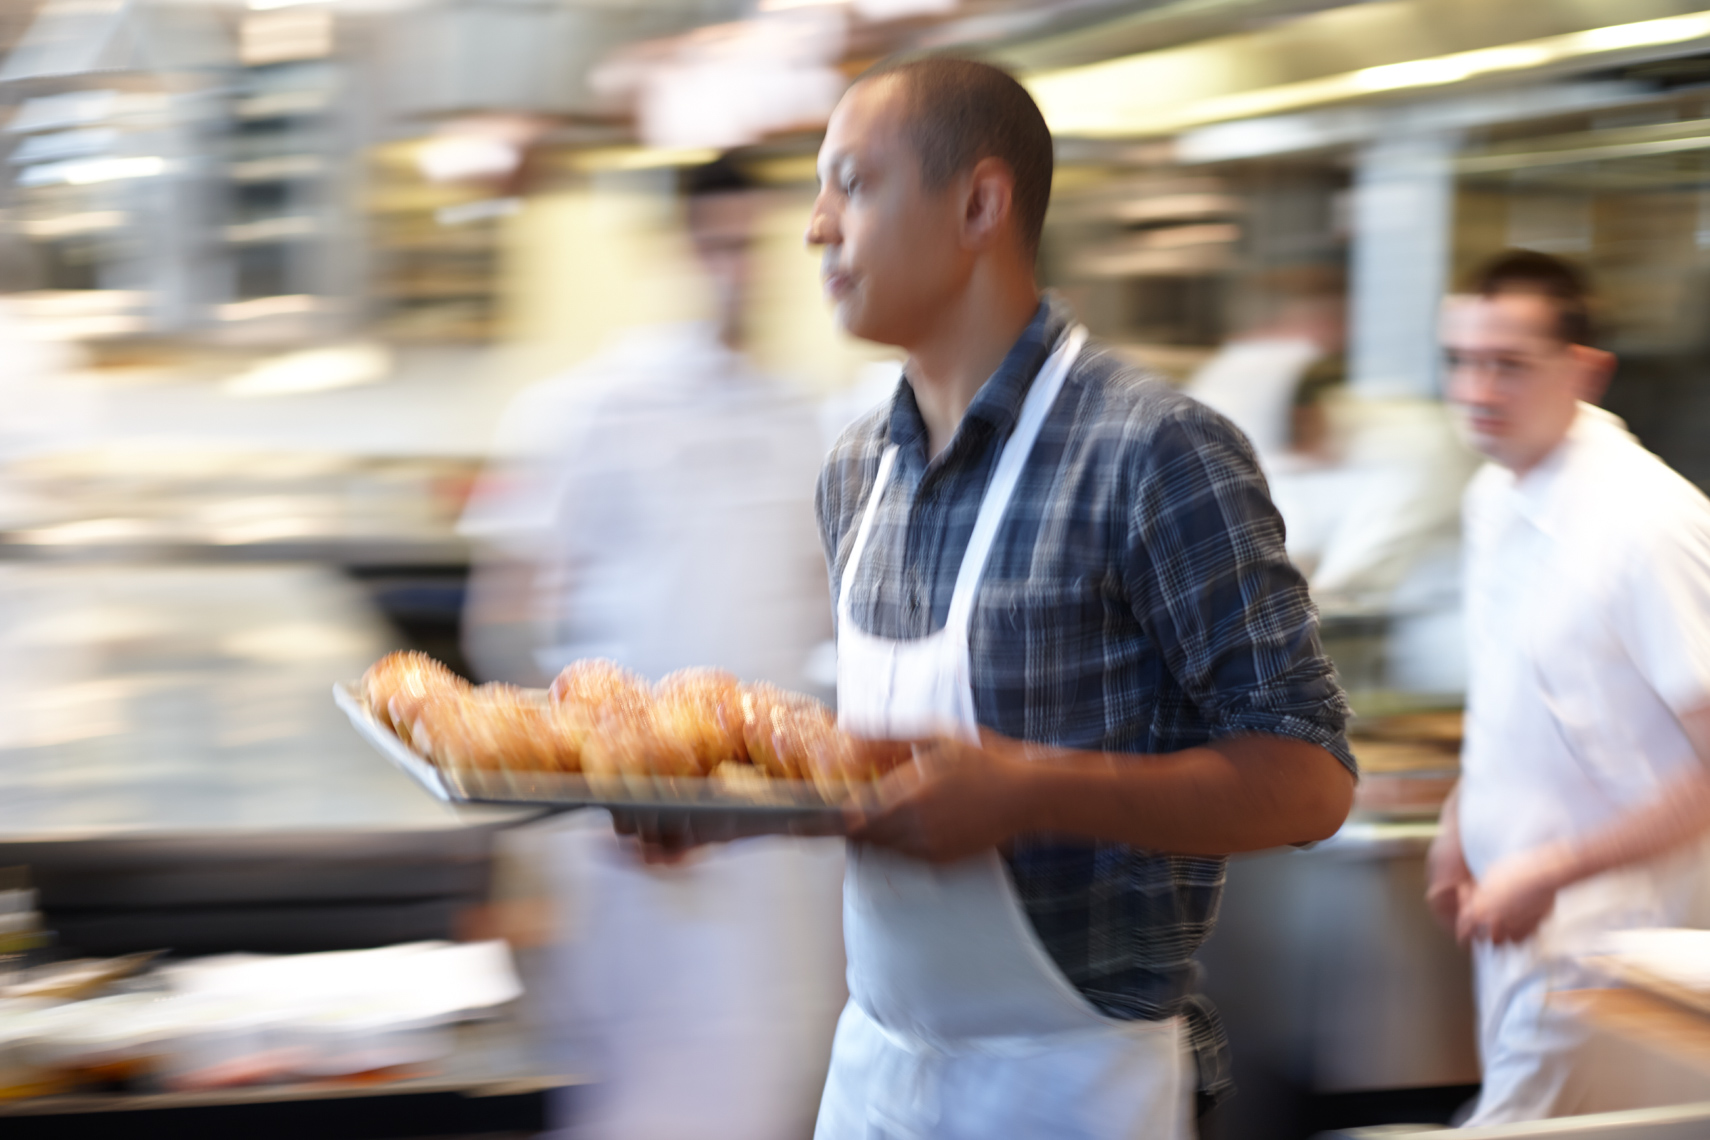 Waiter in white apron rushing through kitchen with a tray of food